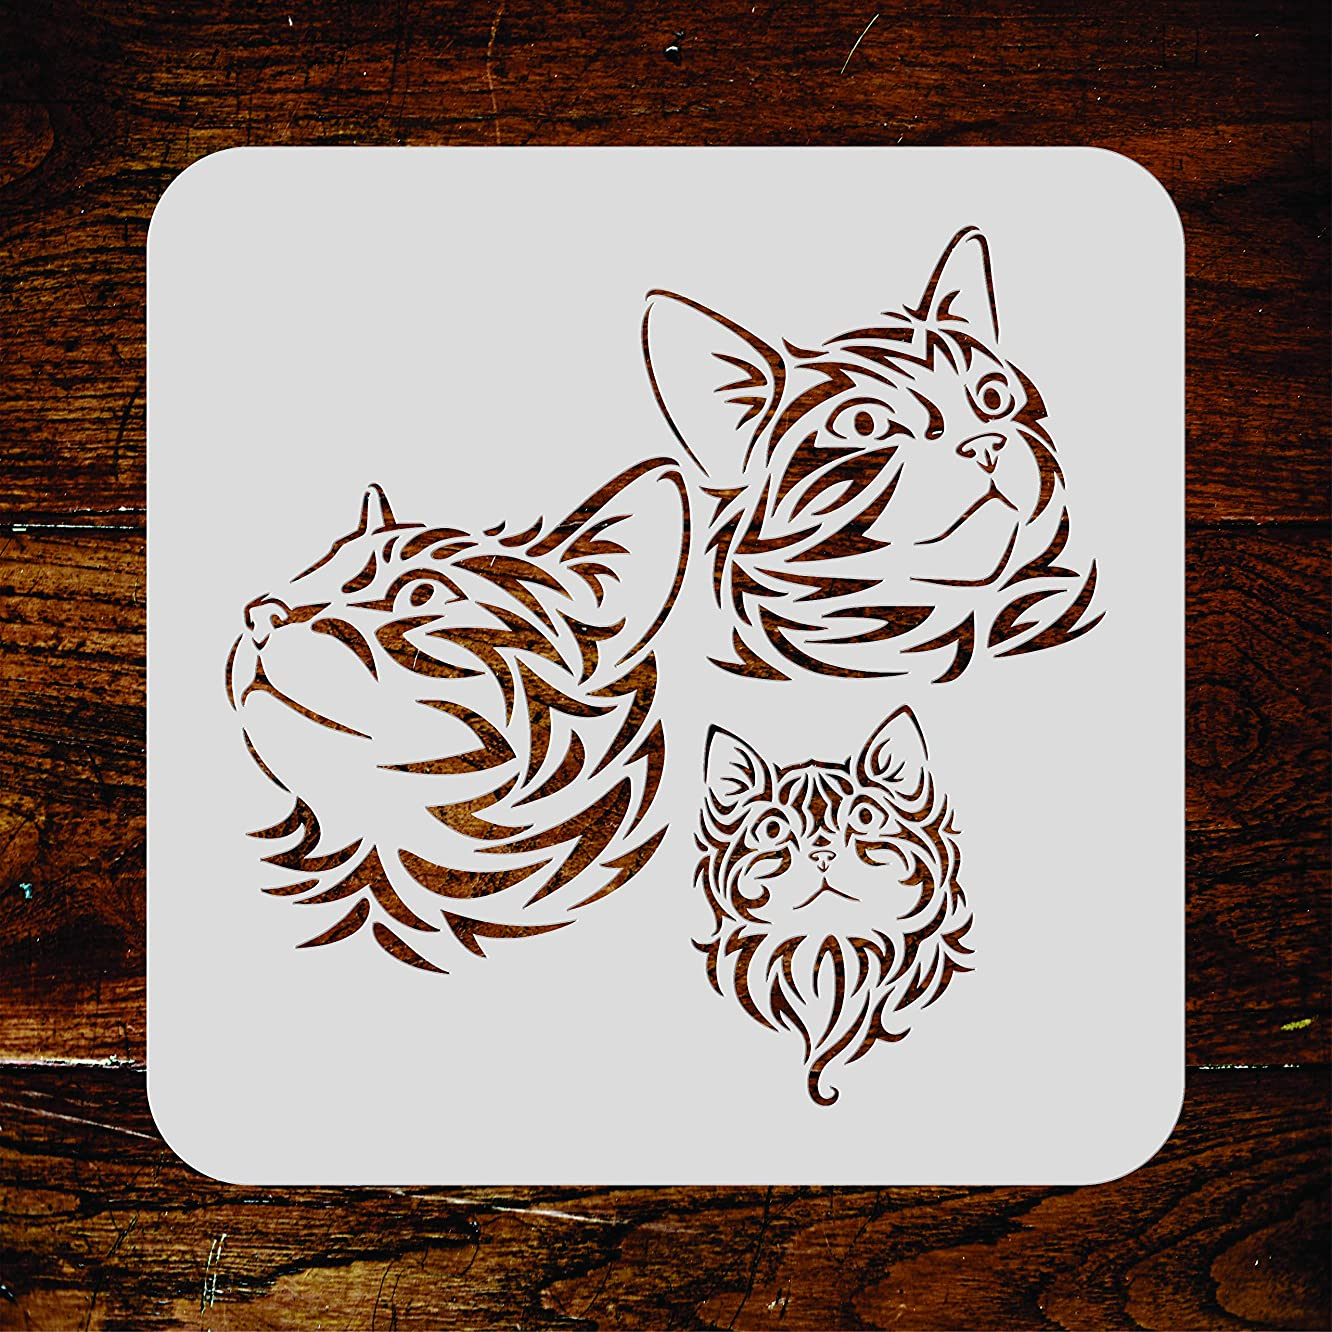 Cat Family Stencil - 6.5 x 6.5 inch (S) - Reusable Pet Animal Kitten Mural Wall Stencil Template - Use on Paper Projects Scrapbook Journal Walls Floors Fabric Furniture Glass Wood etc.